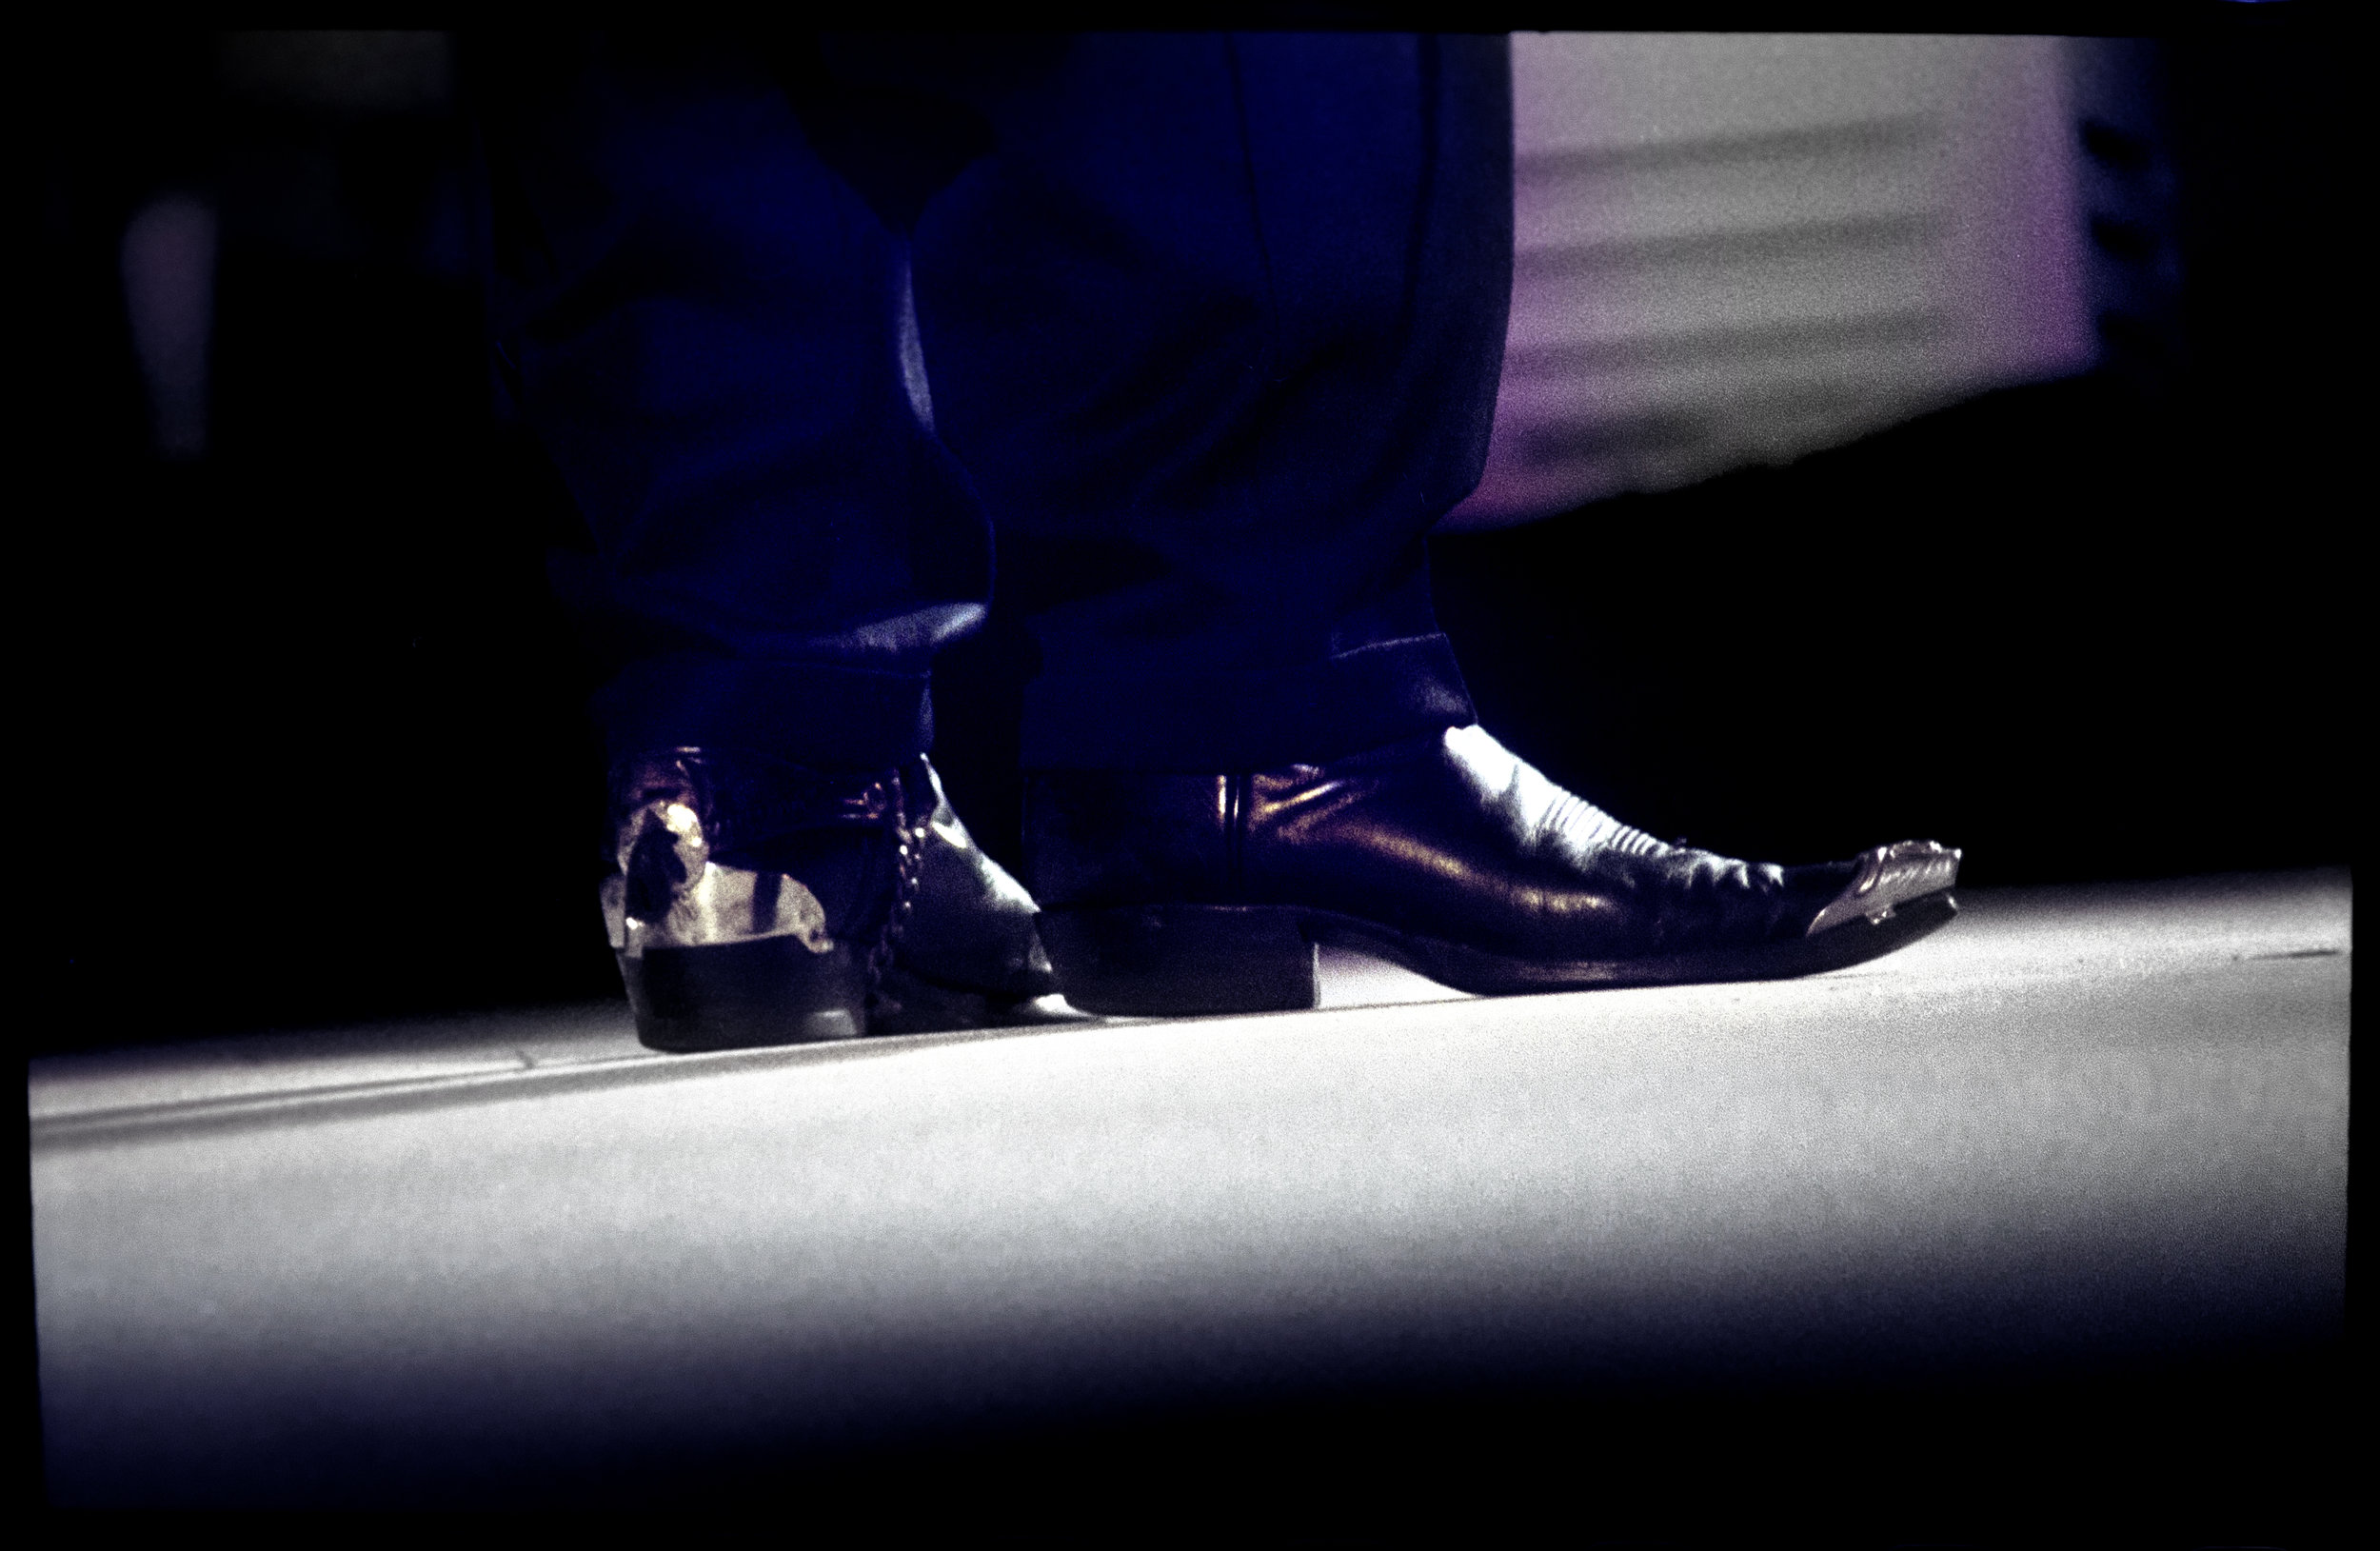 Jimmie Vaughn's boots. Mississippi Valley Blues Festival, 1999